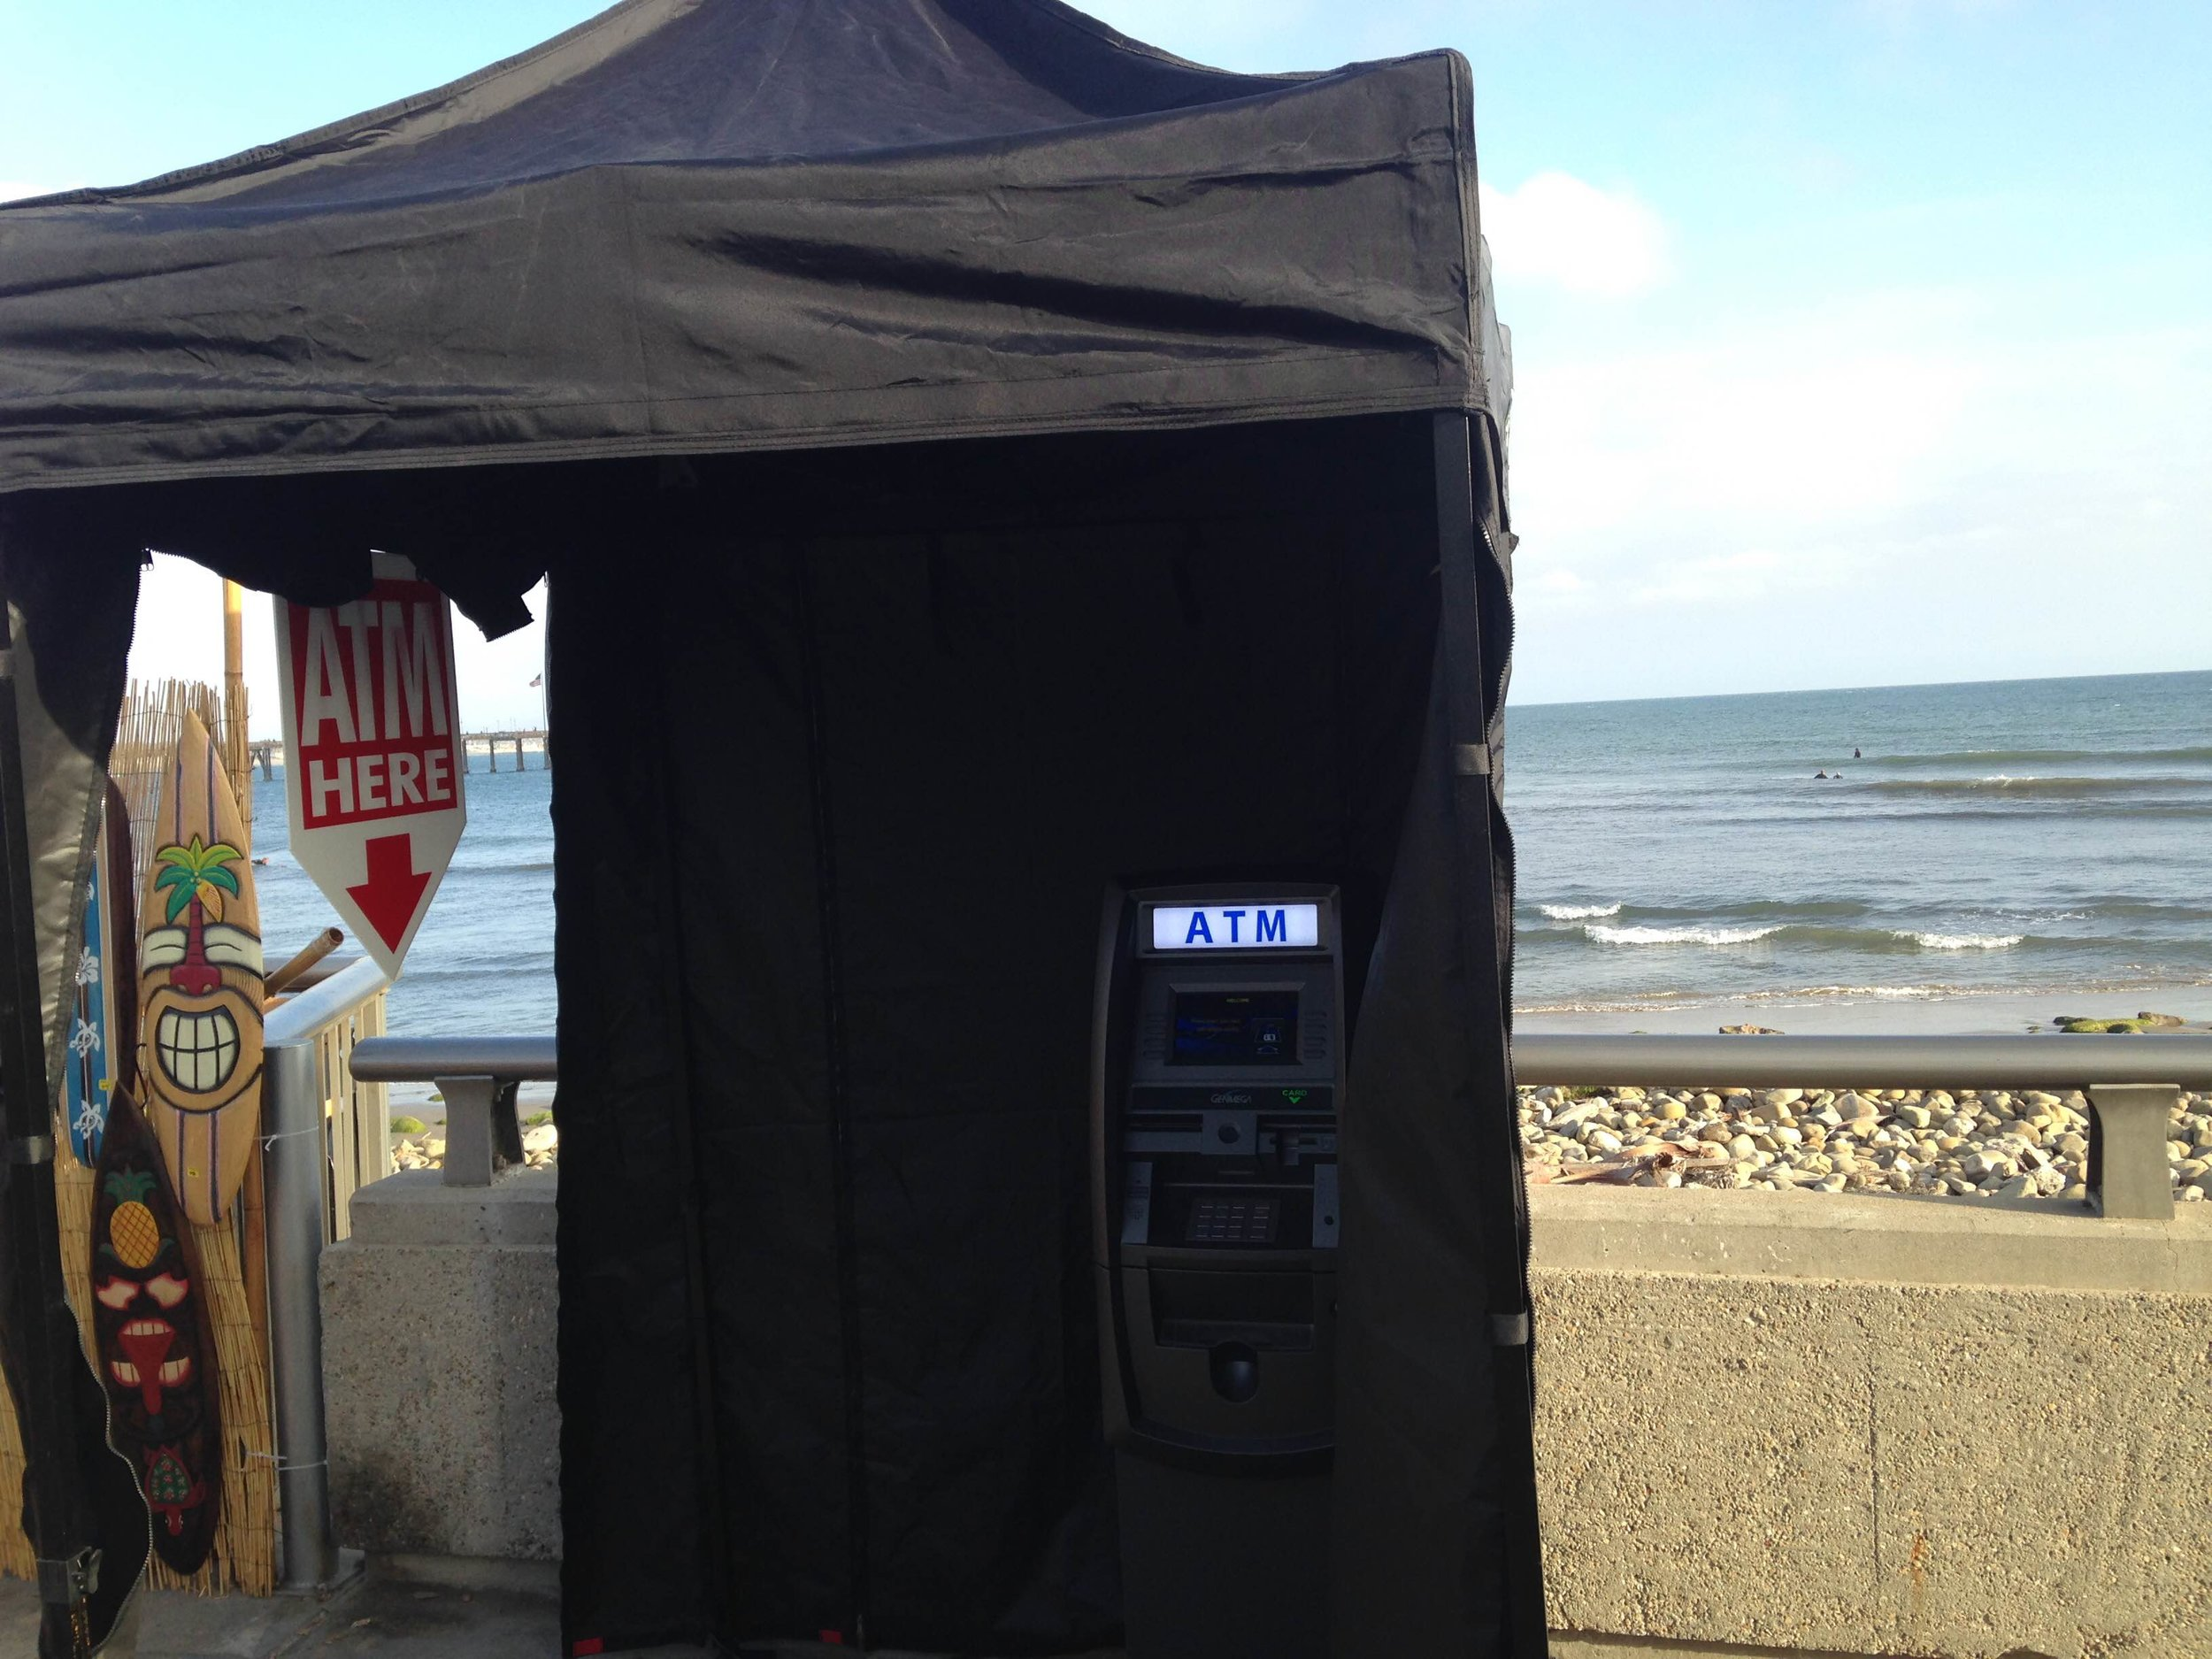 2016 Aloha Festival in Ventura California:  Mobile ATM placed on the beach boardwalk outdoors inside the vendor village.